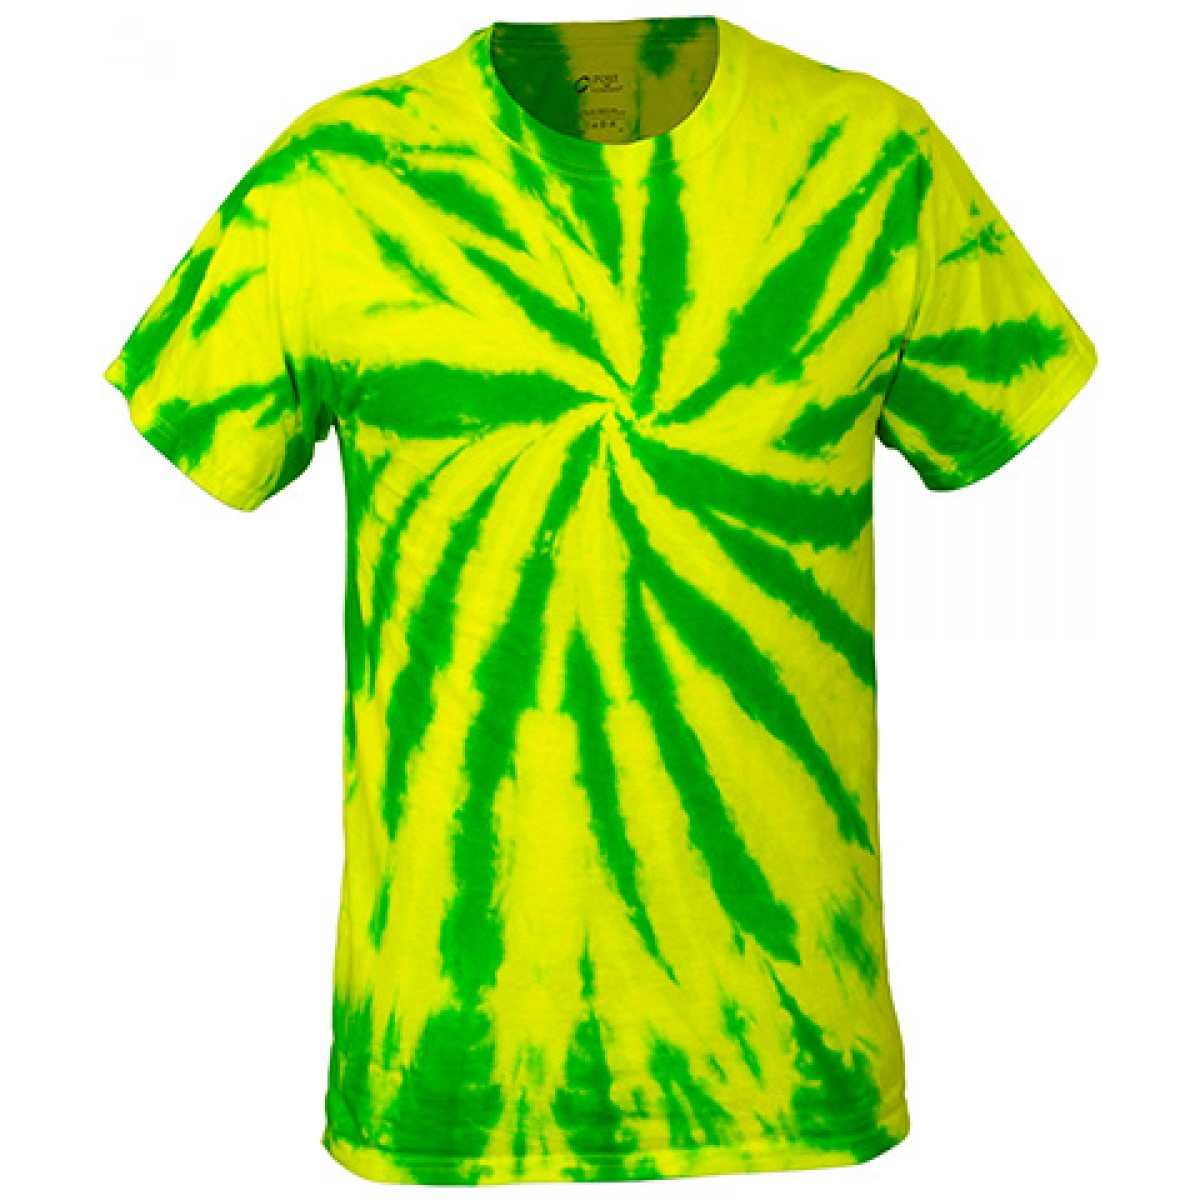 Multi-Color Tie-Dye Tee -Neon Green-YL